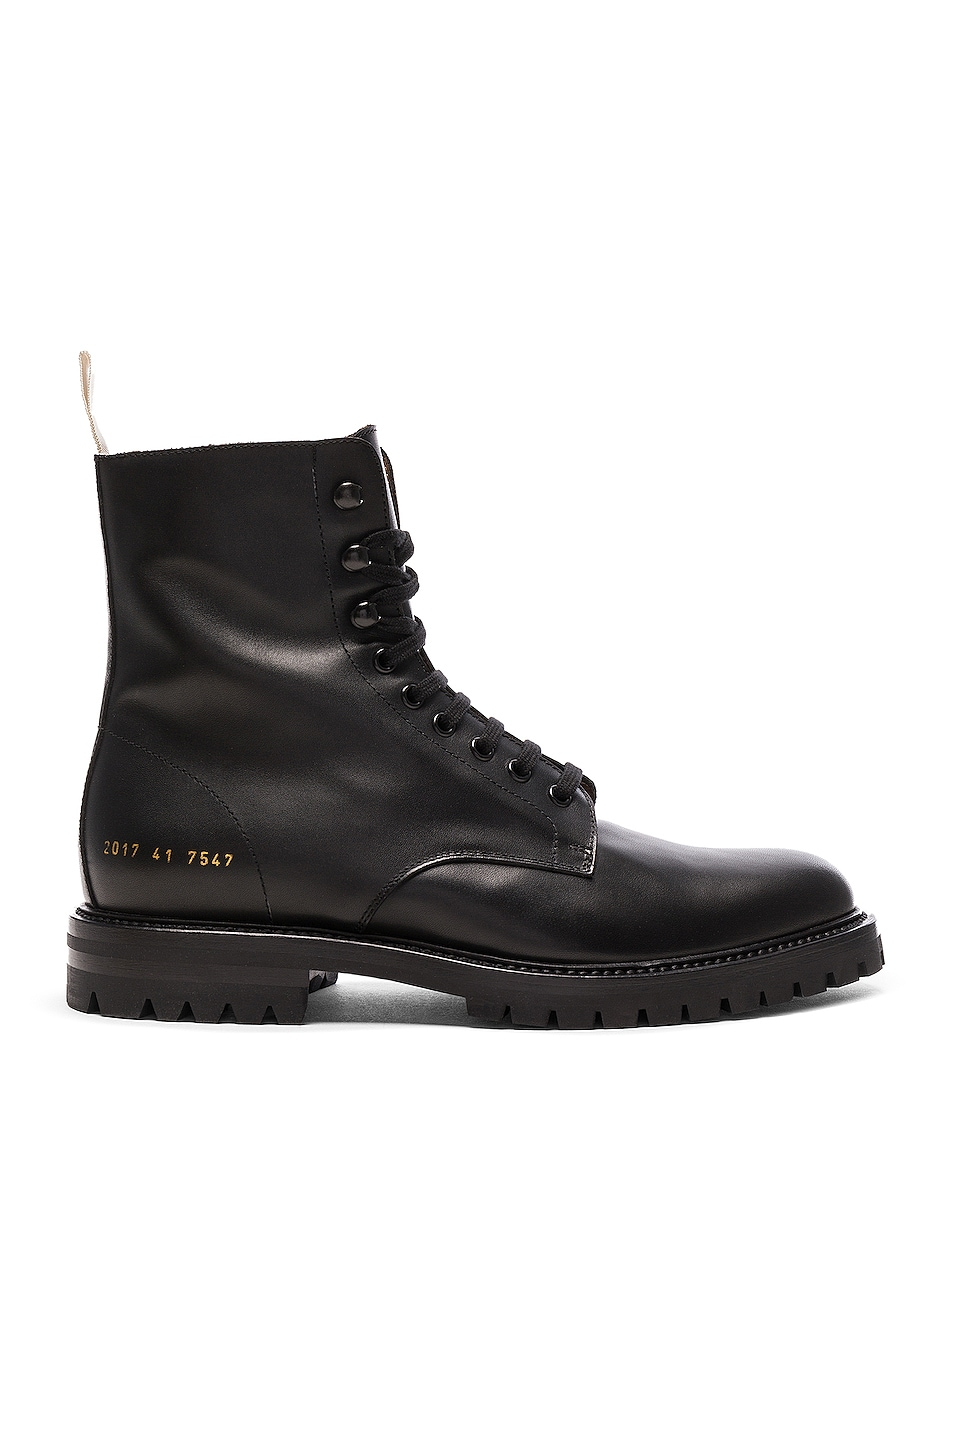 Image 1 of Common Projects Leather Winter Combat Boots in Black